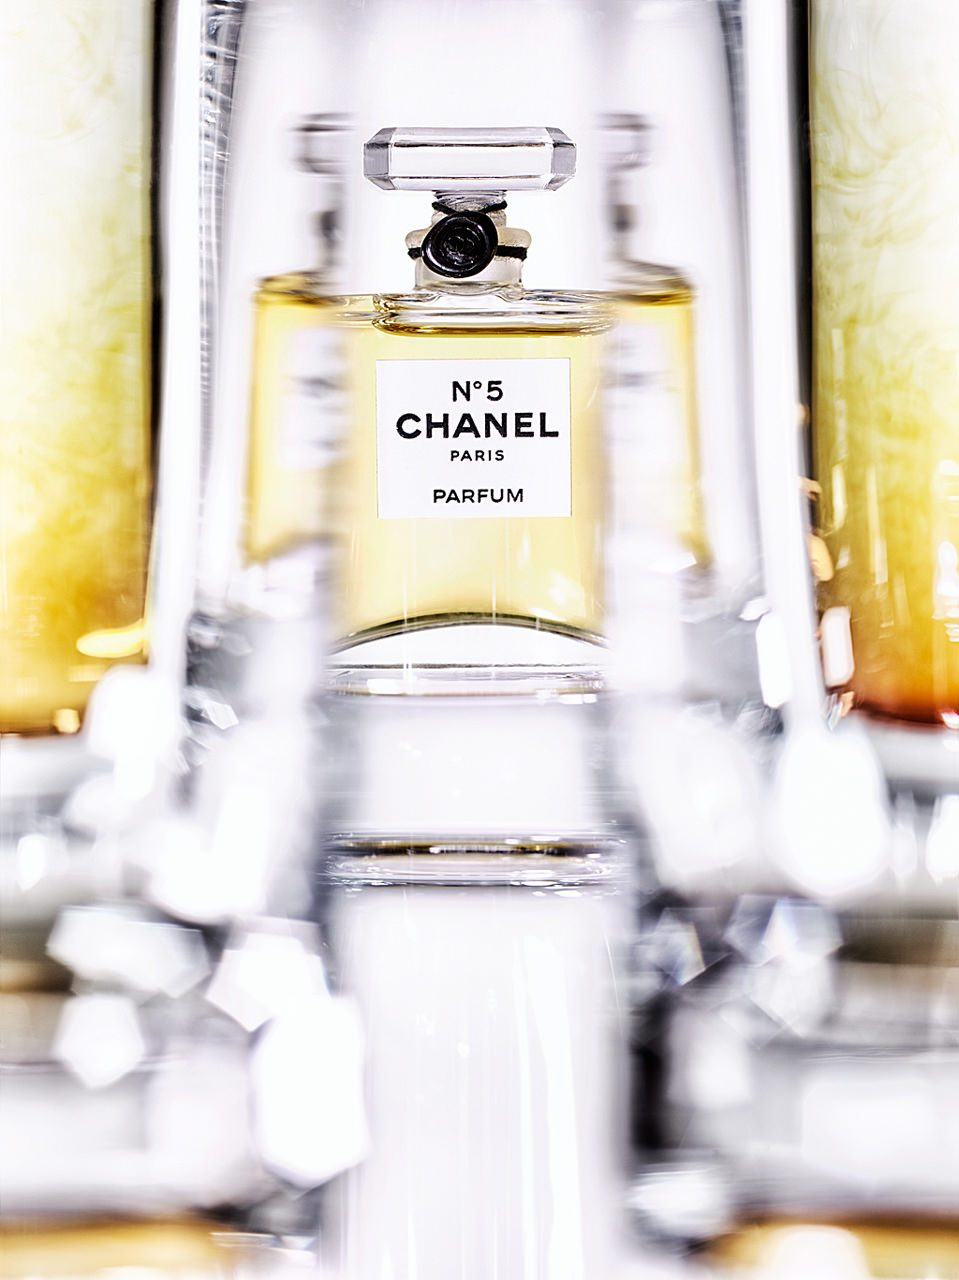 Sabine-Scheer-chanel-commercialphotography-cosmetics-perfume-fragrance